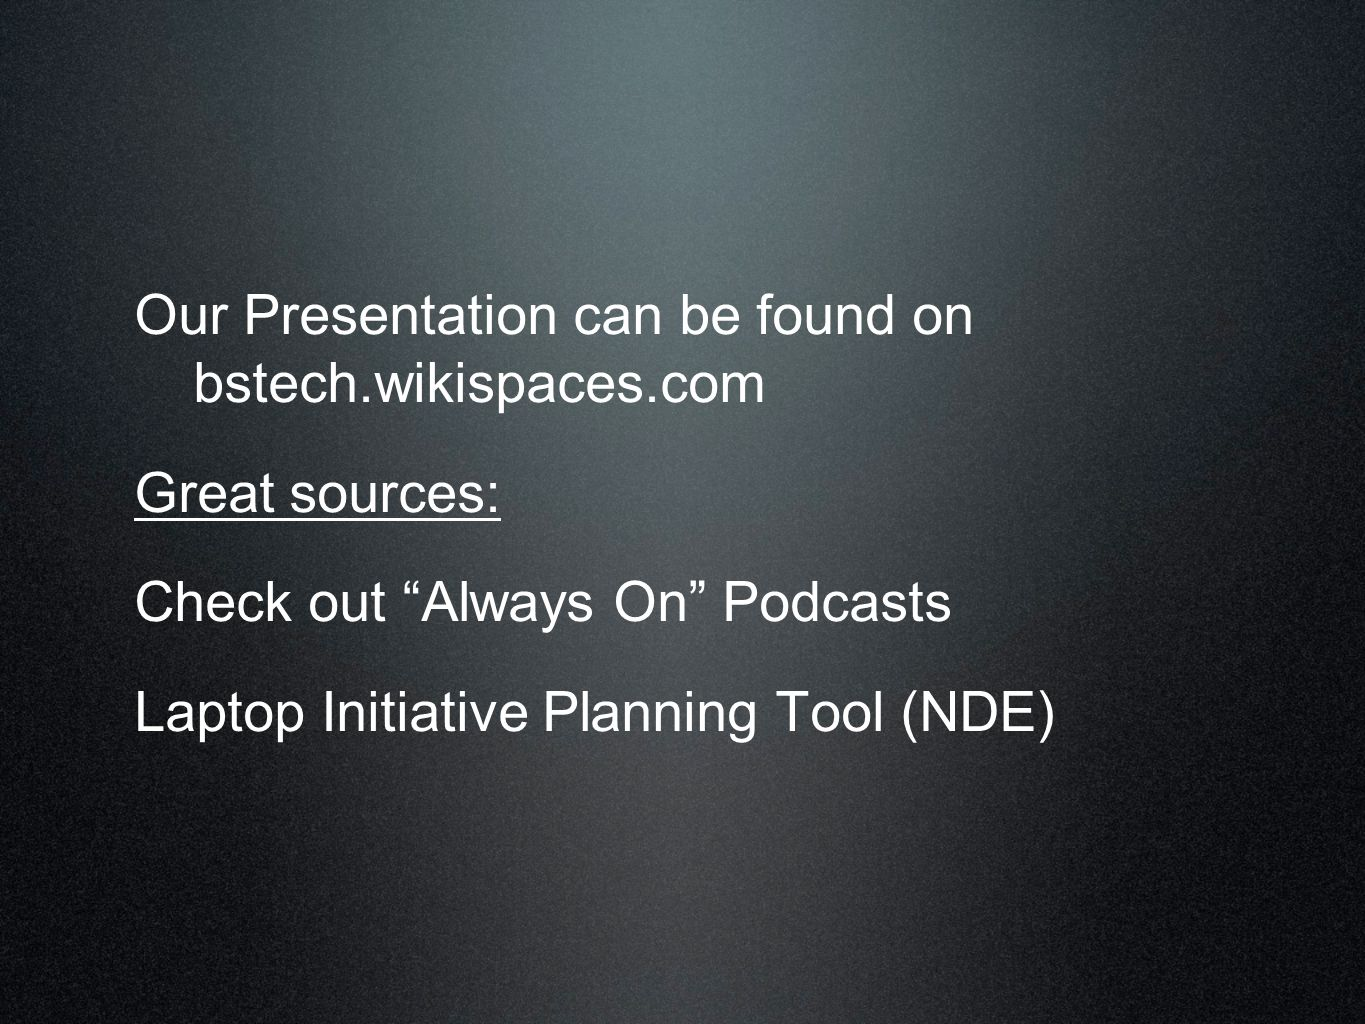 Our Presentation can be found on bstech.wikispaces.com Great sources: Check out Always On Podcasts Laptop Initiative Planning Tool (NDE)